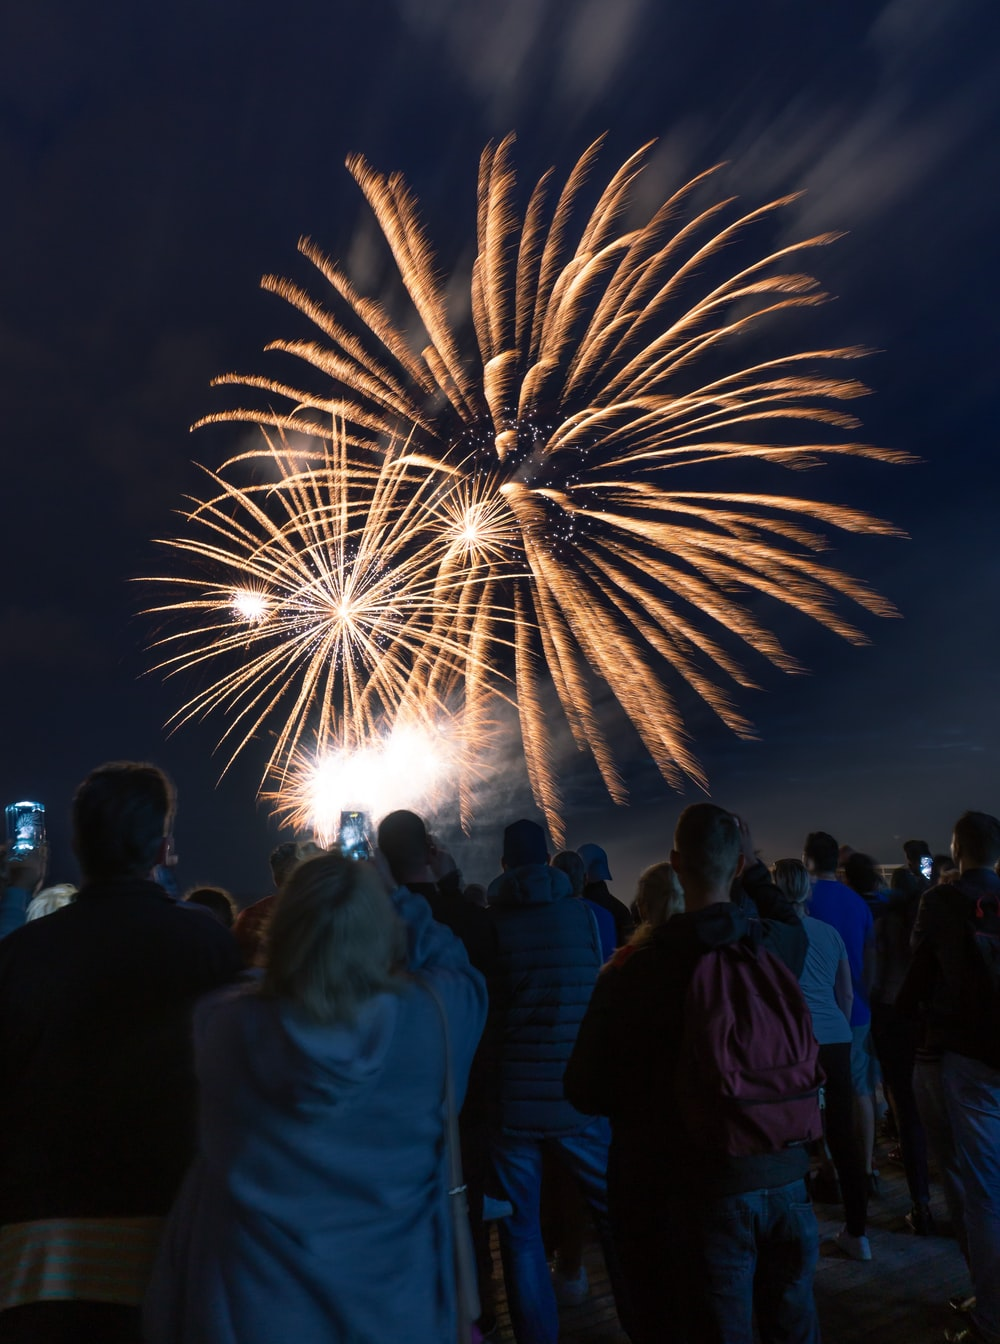 people gathering and watching fireworks display